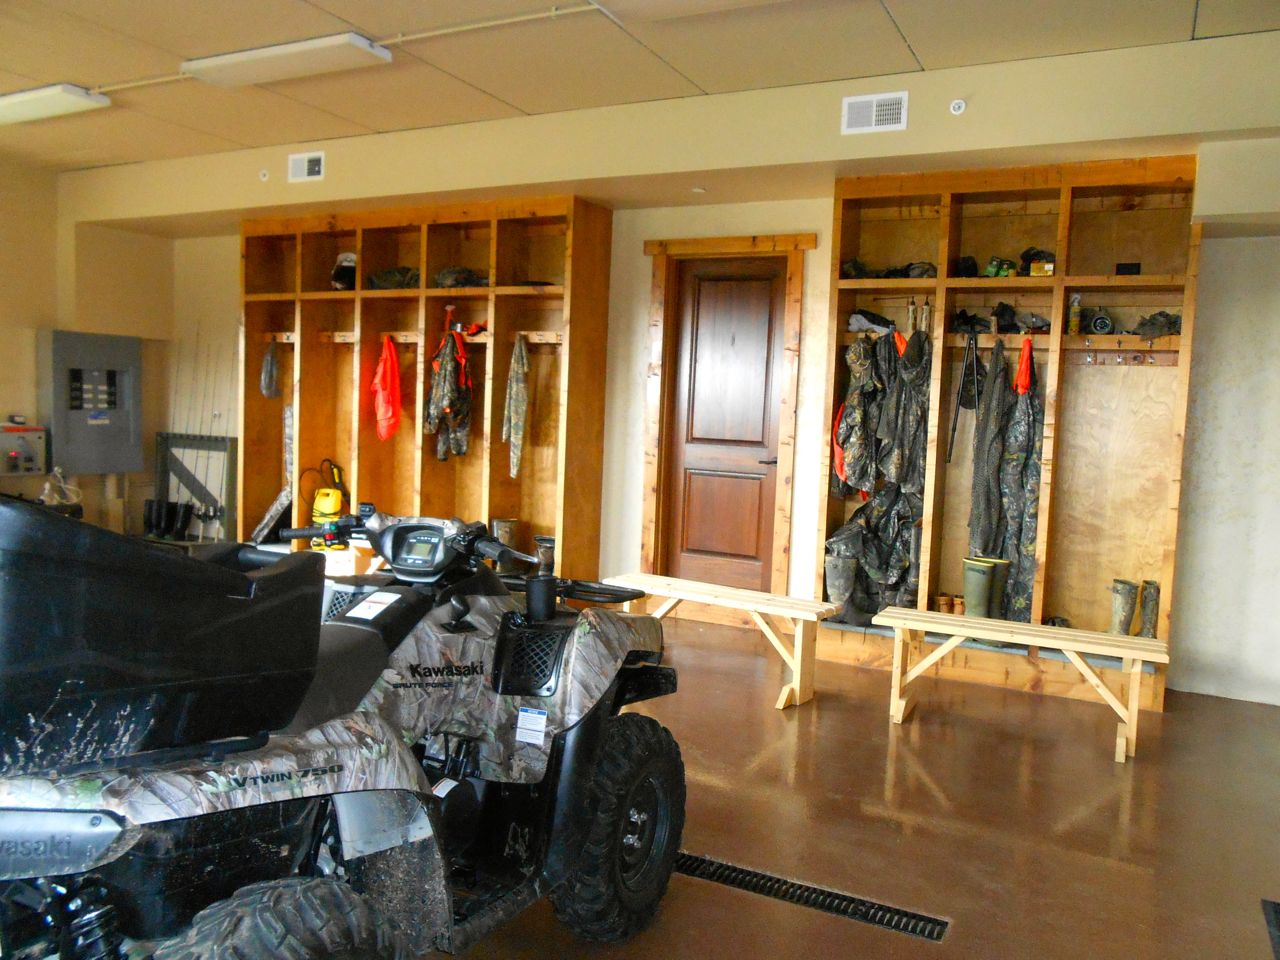 Extra heated garage in the basement for the hunting gear and four wheelers.